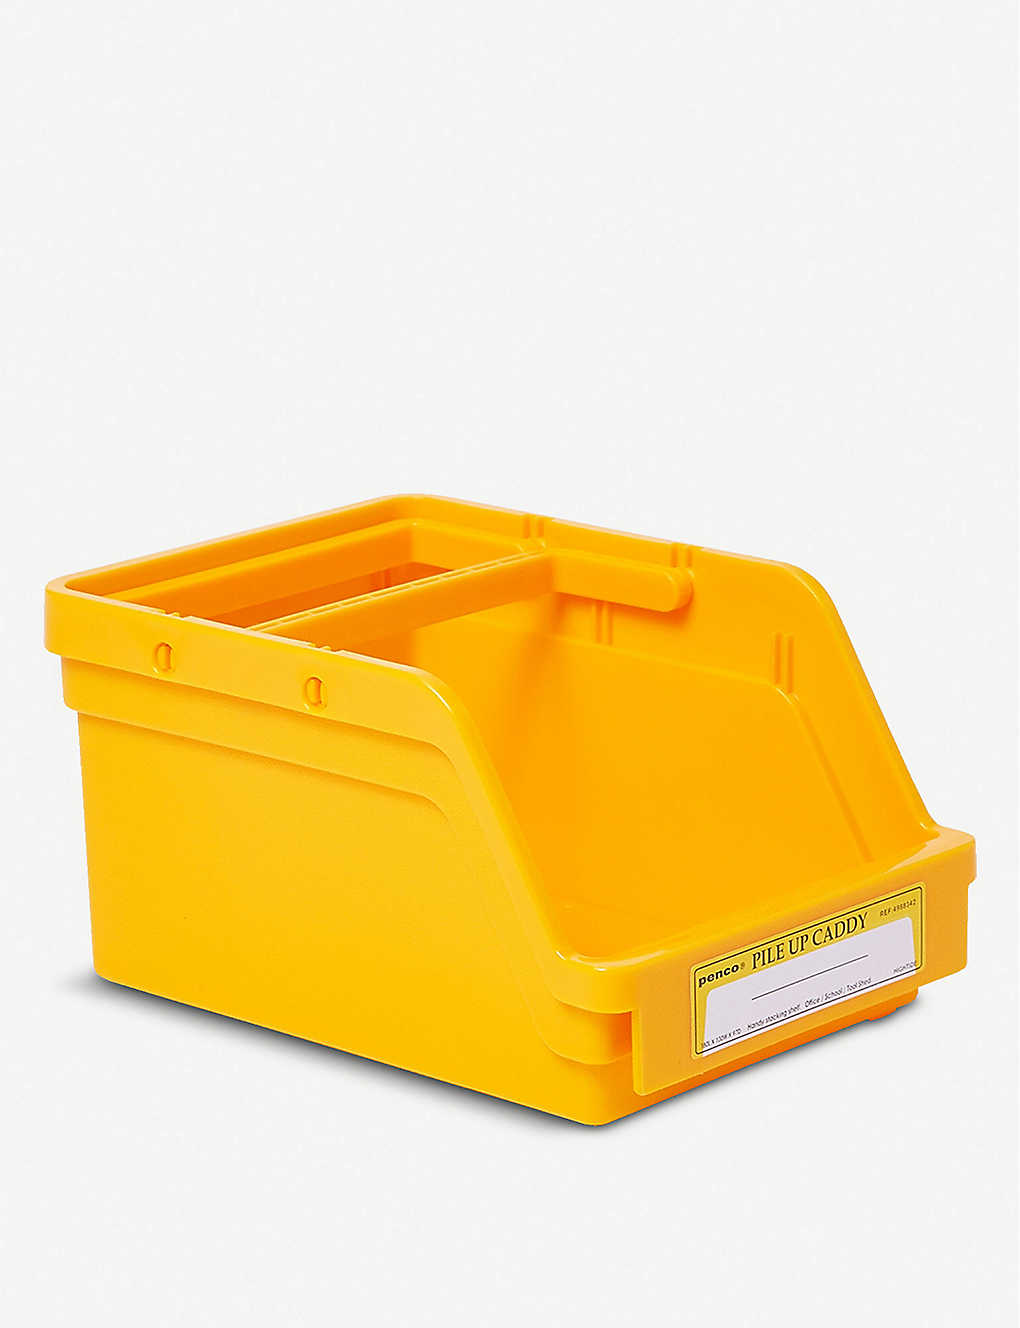 THE CONRAN SHOP: Pile Up plastic caddy